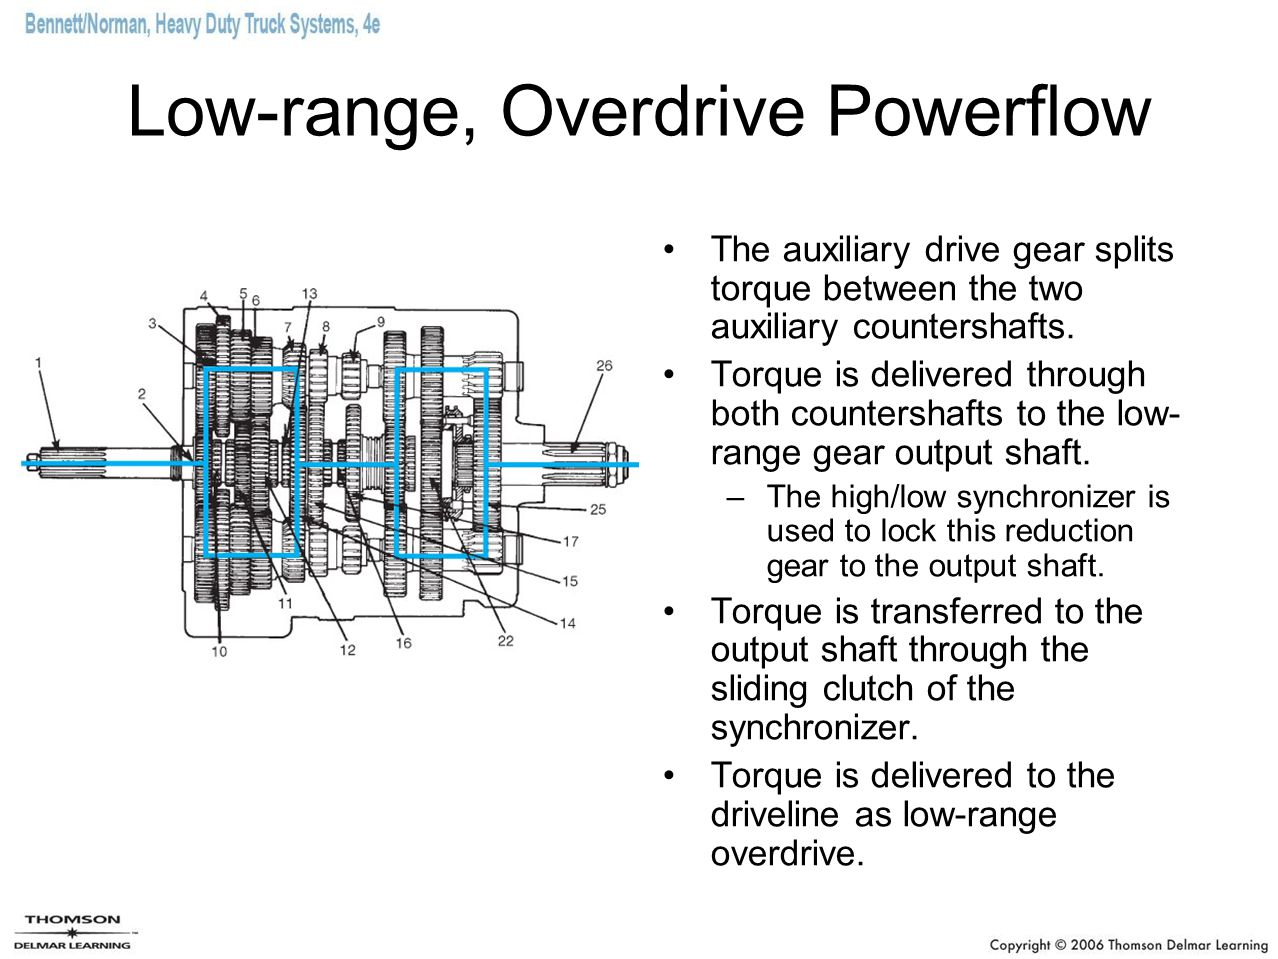 Low-range, Overdrive Powerflow The auxiliary drive gear splits torque between the two auxiliary countershafts. Torque is delivered through both counte